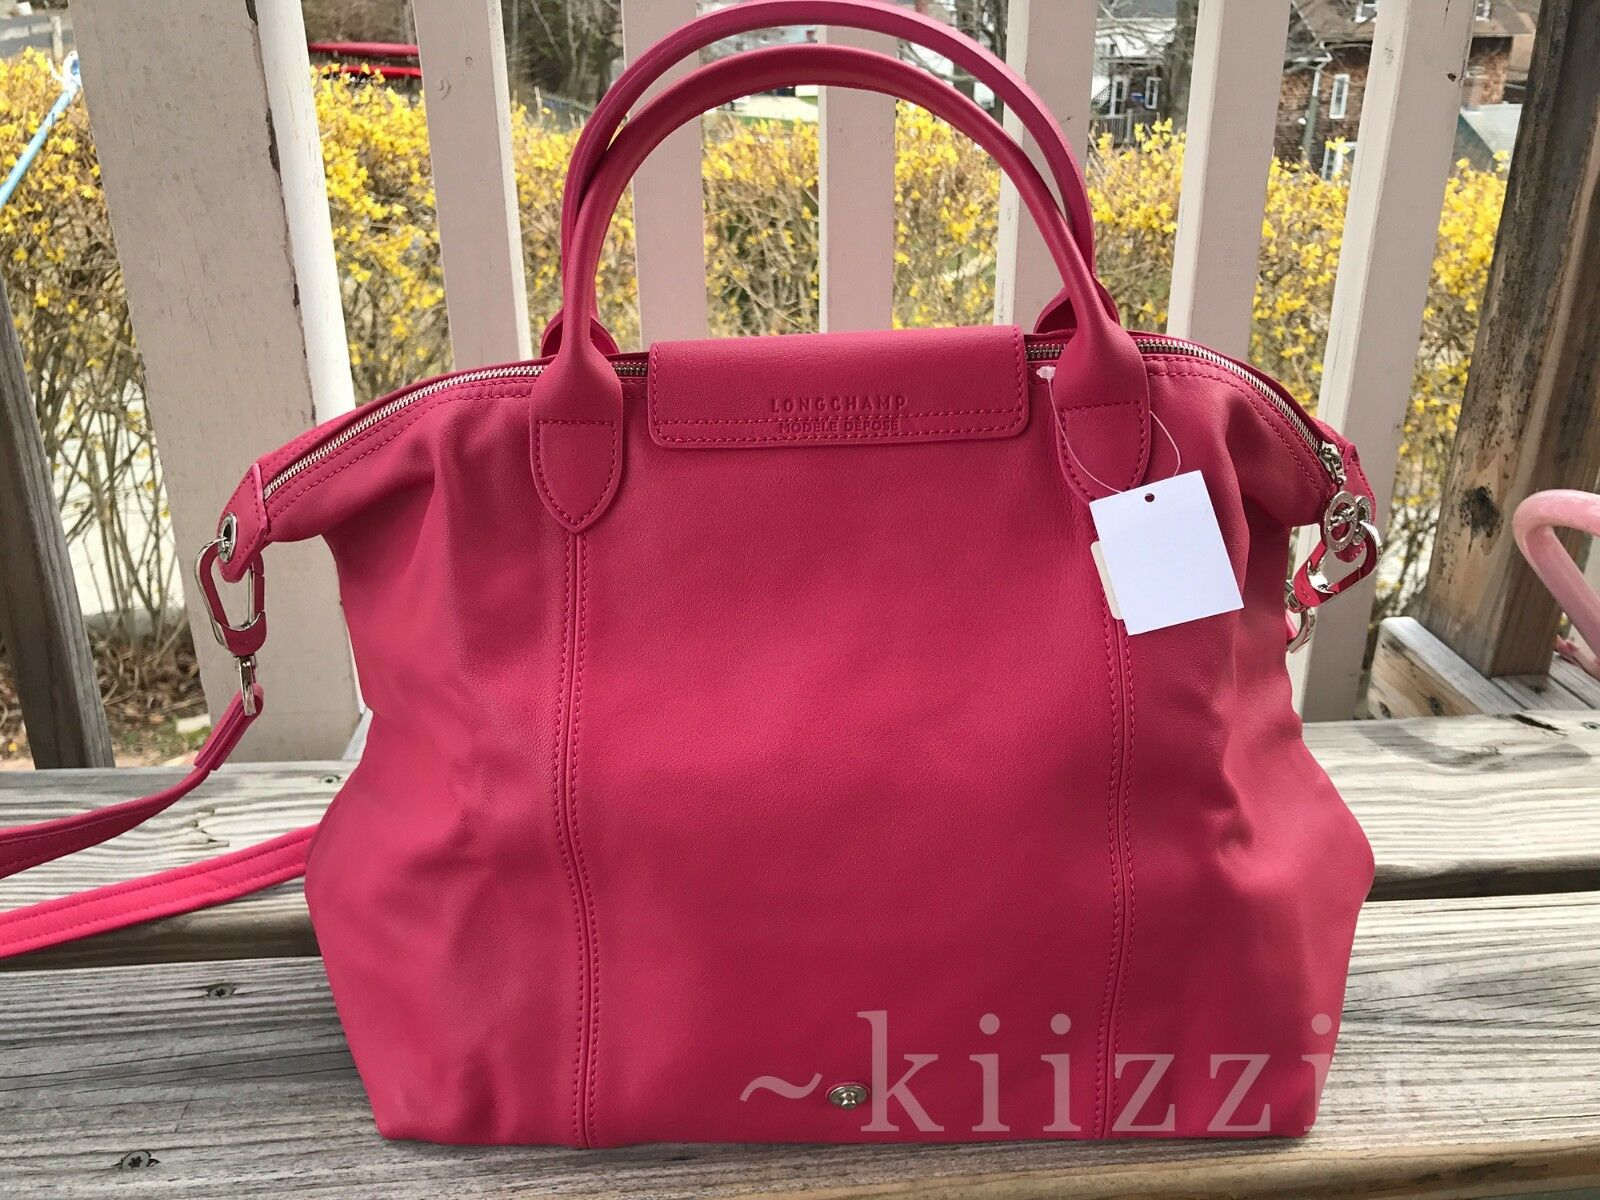 e1cc2a89a470 ... NEW w dustbag Longchamp Le Pliage Cuir Leather Tote Pink Medium Handbag  Foldable фото ...